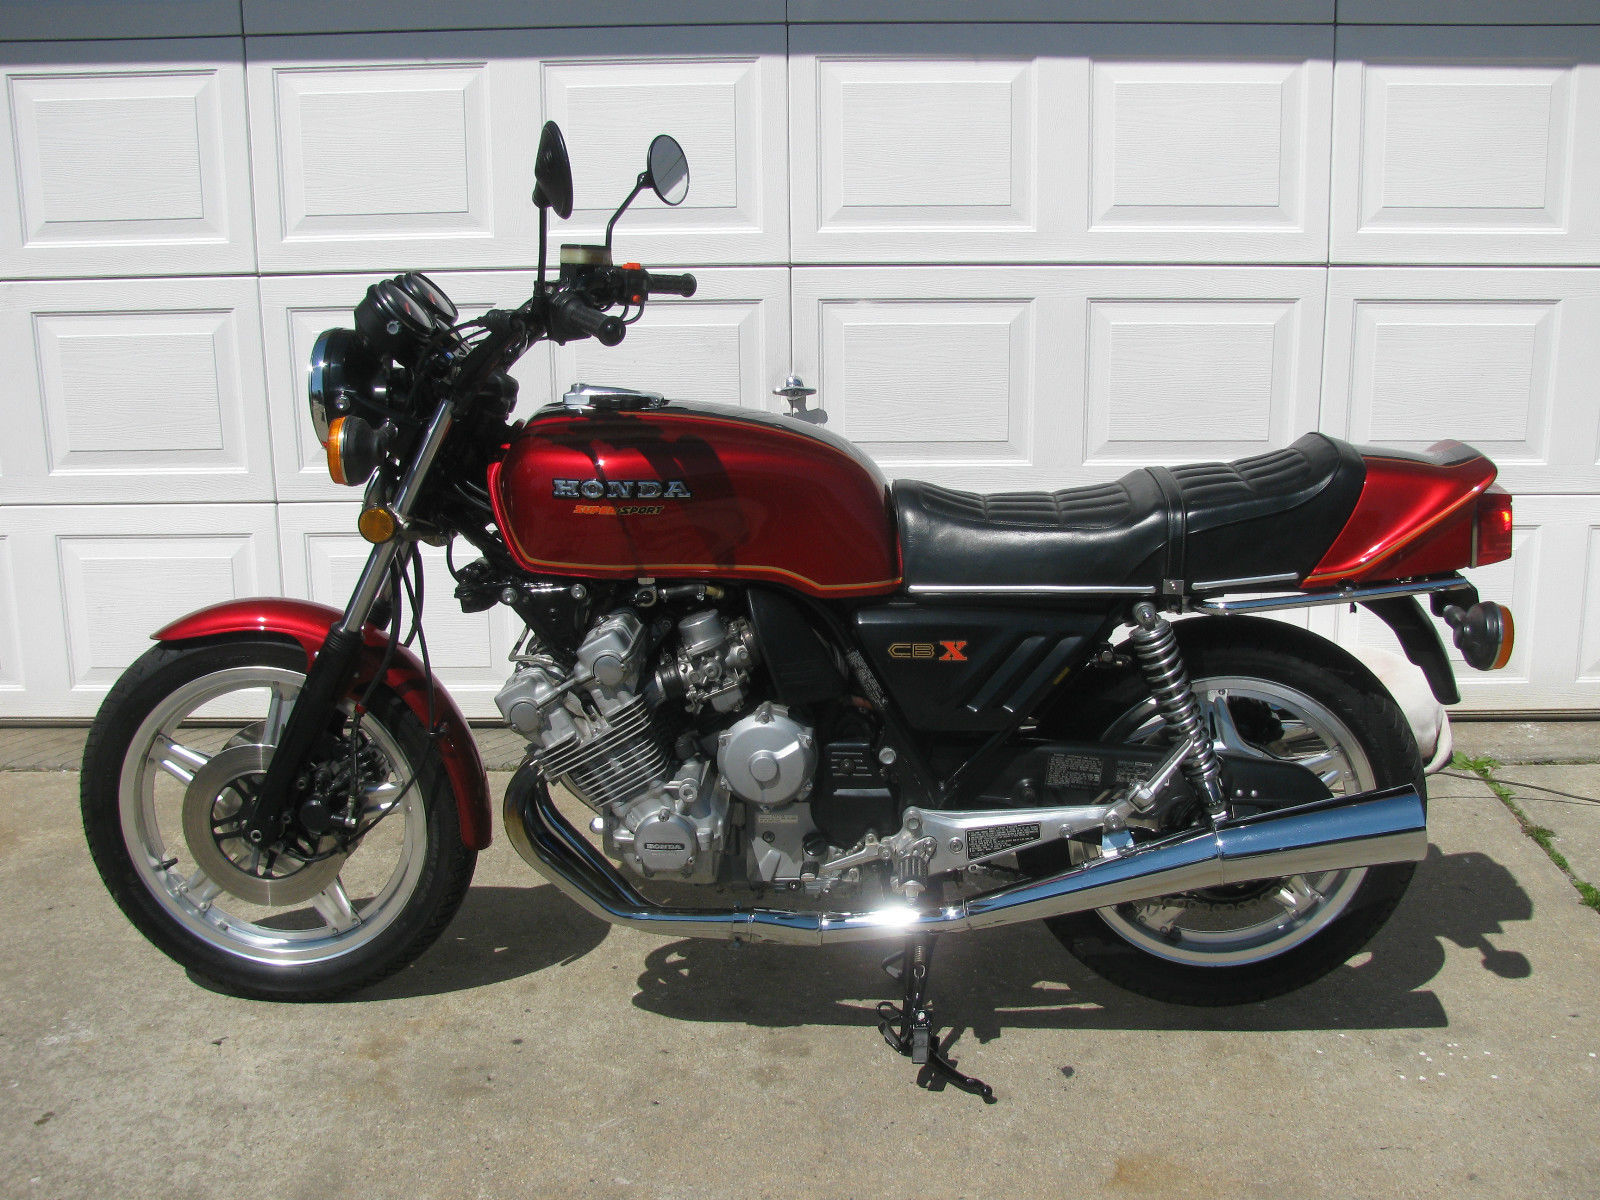 1979 honda cbx1000 with 3700 miles in new york rare. Black Bedroom Furniture Sets. Home Design Ideas